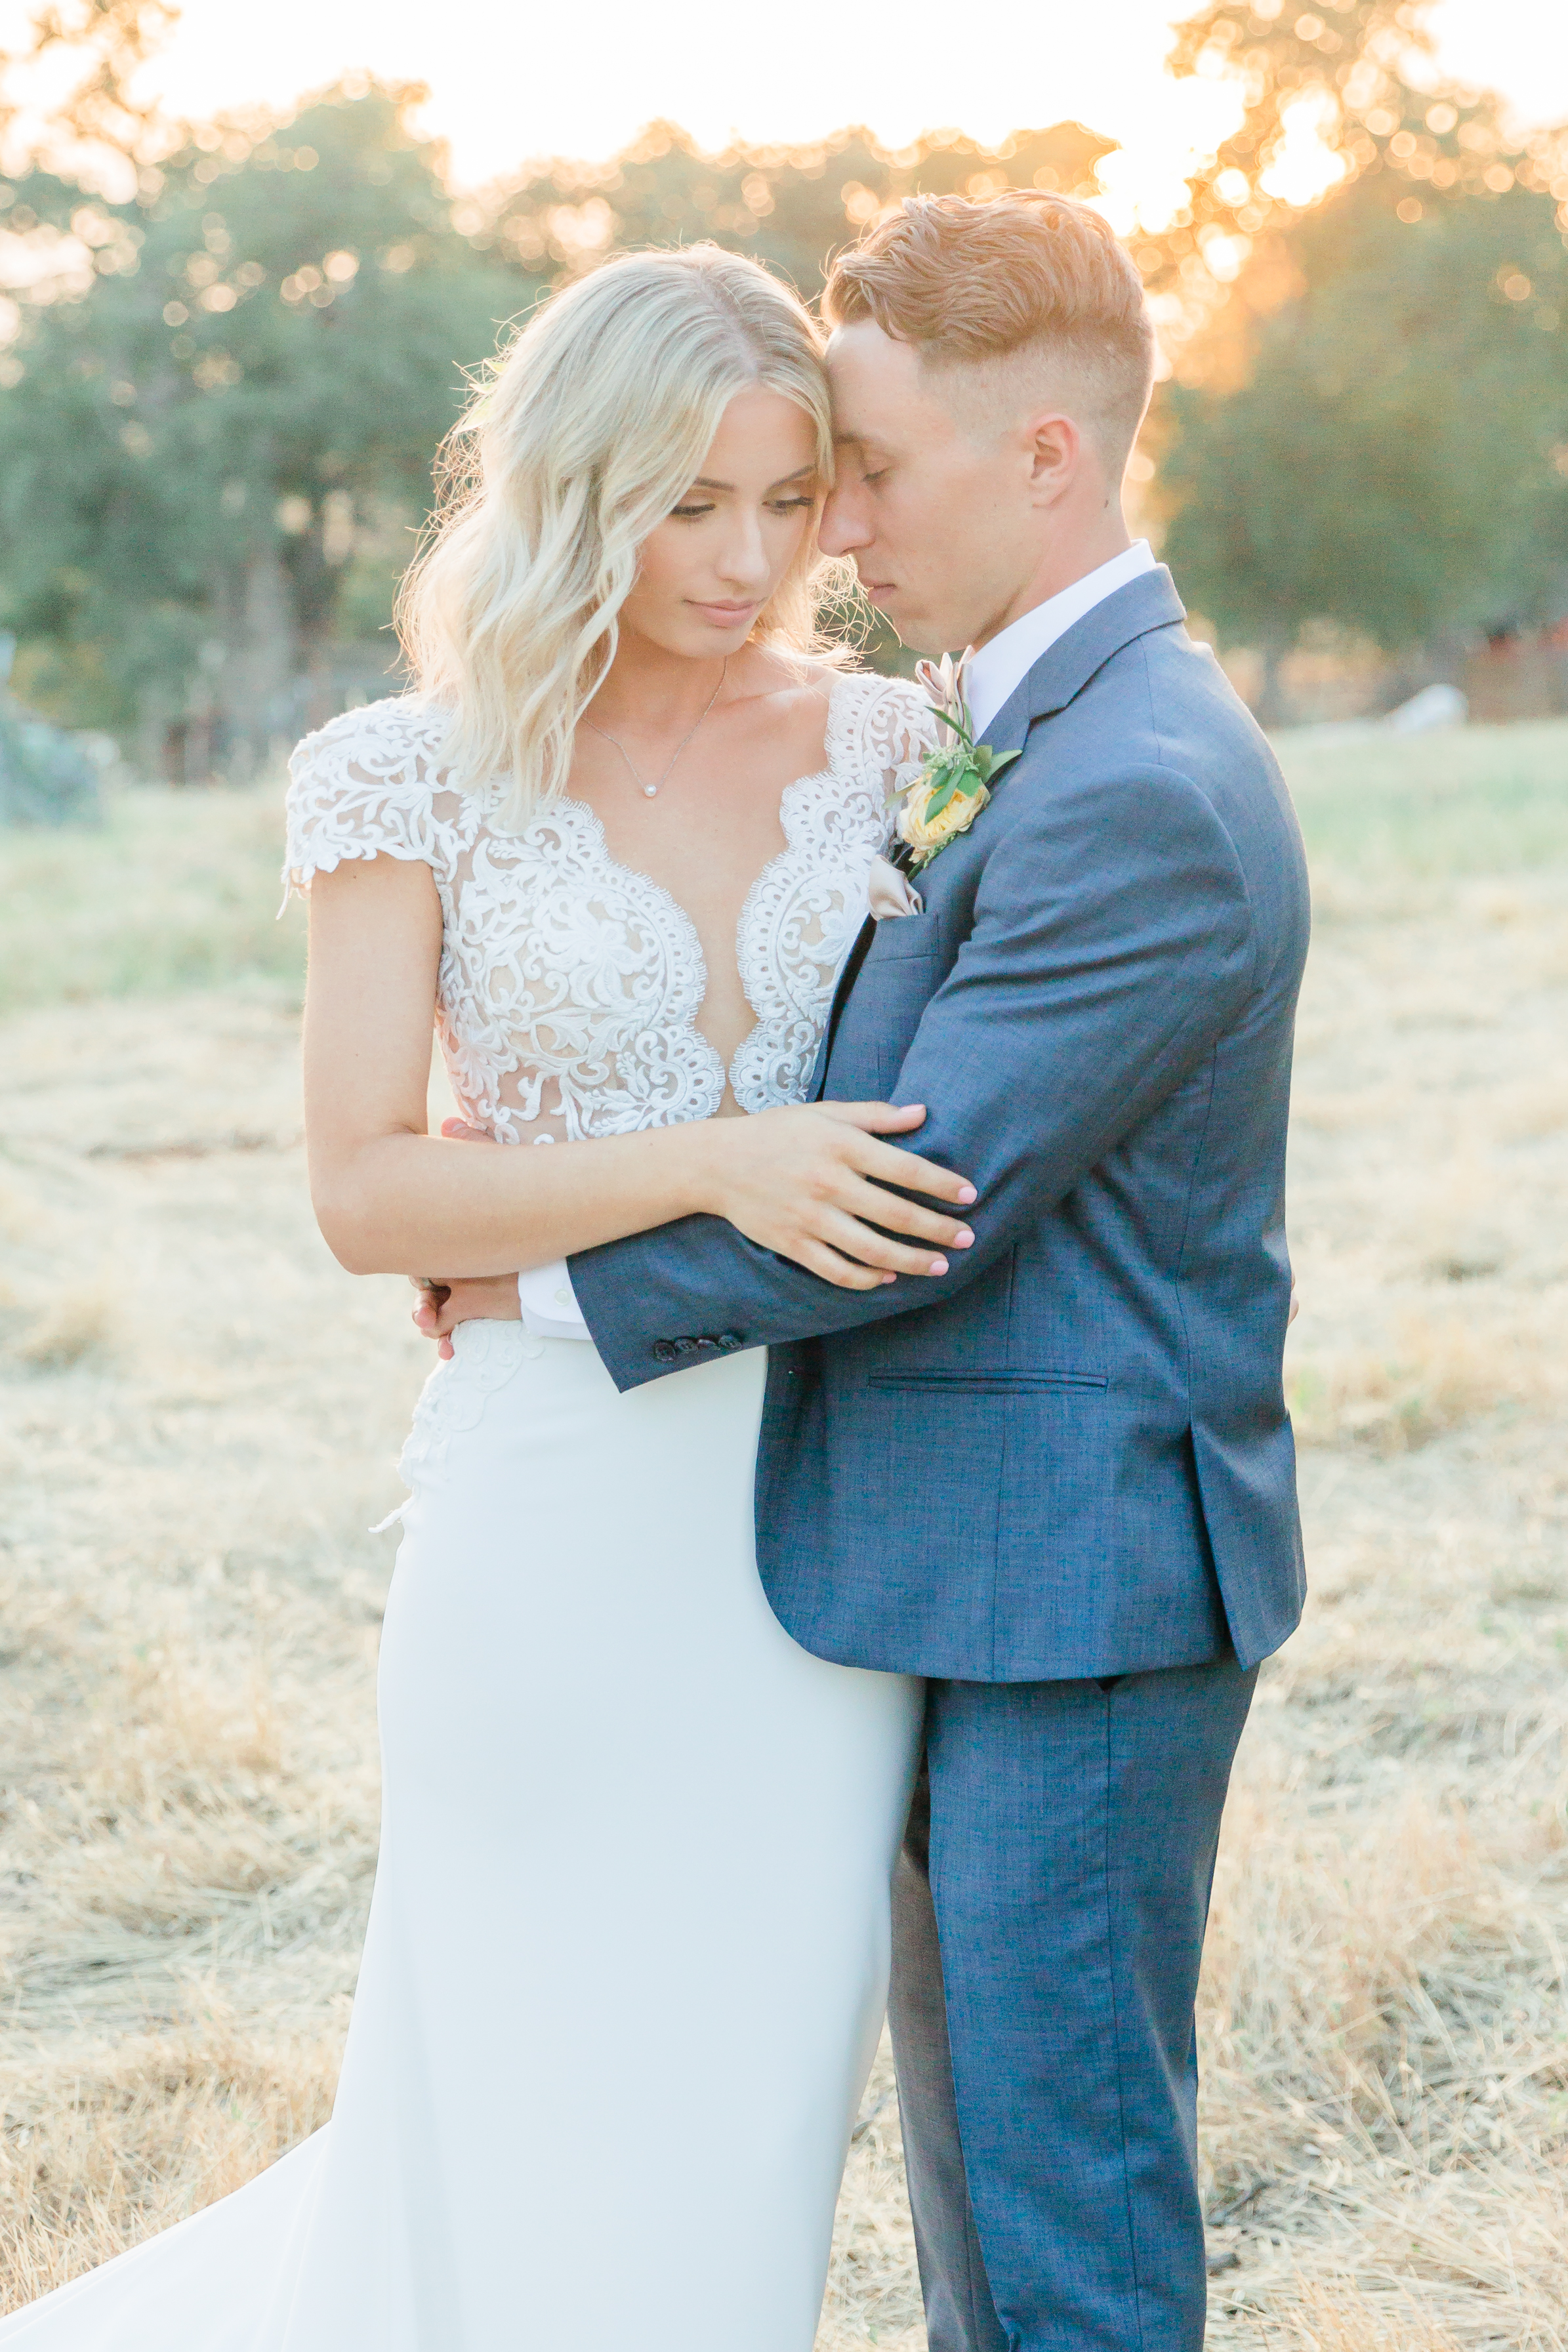 Kaitlynn and Colby - Married - Sneaks - Lauren Alisse Photography-108.jpg